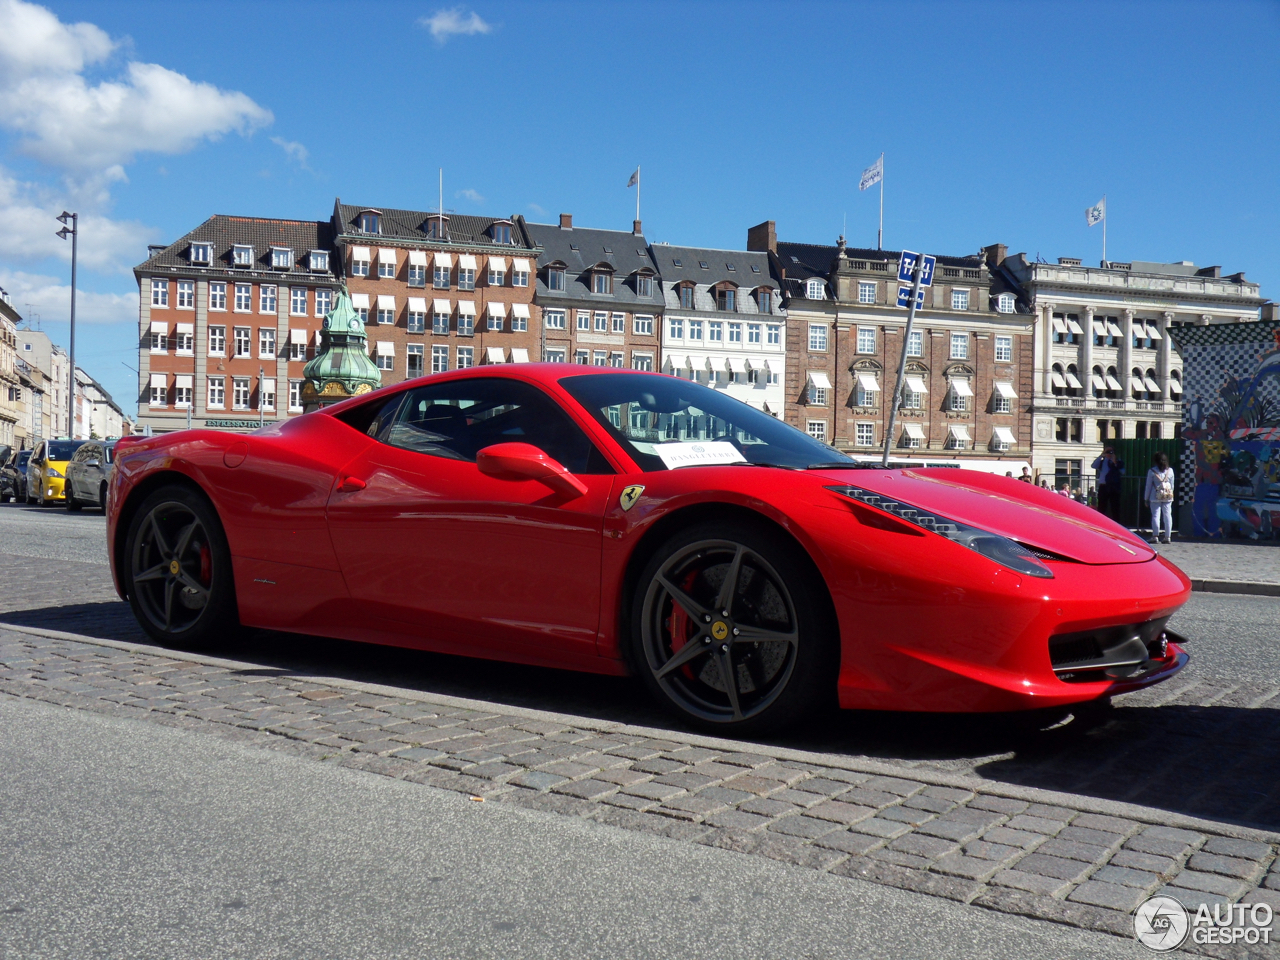 2017 Ferrari 458 Price >> Ferrari 458 Italia - 9 September 2016 - Autogespot